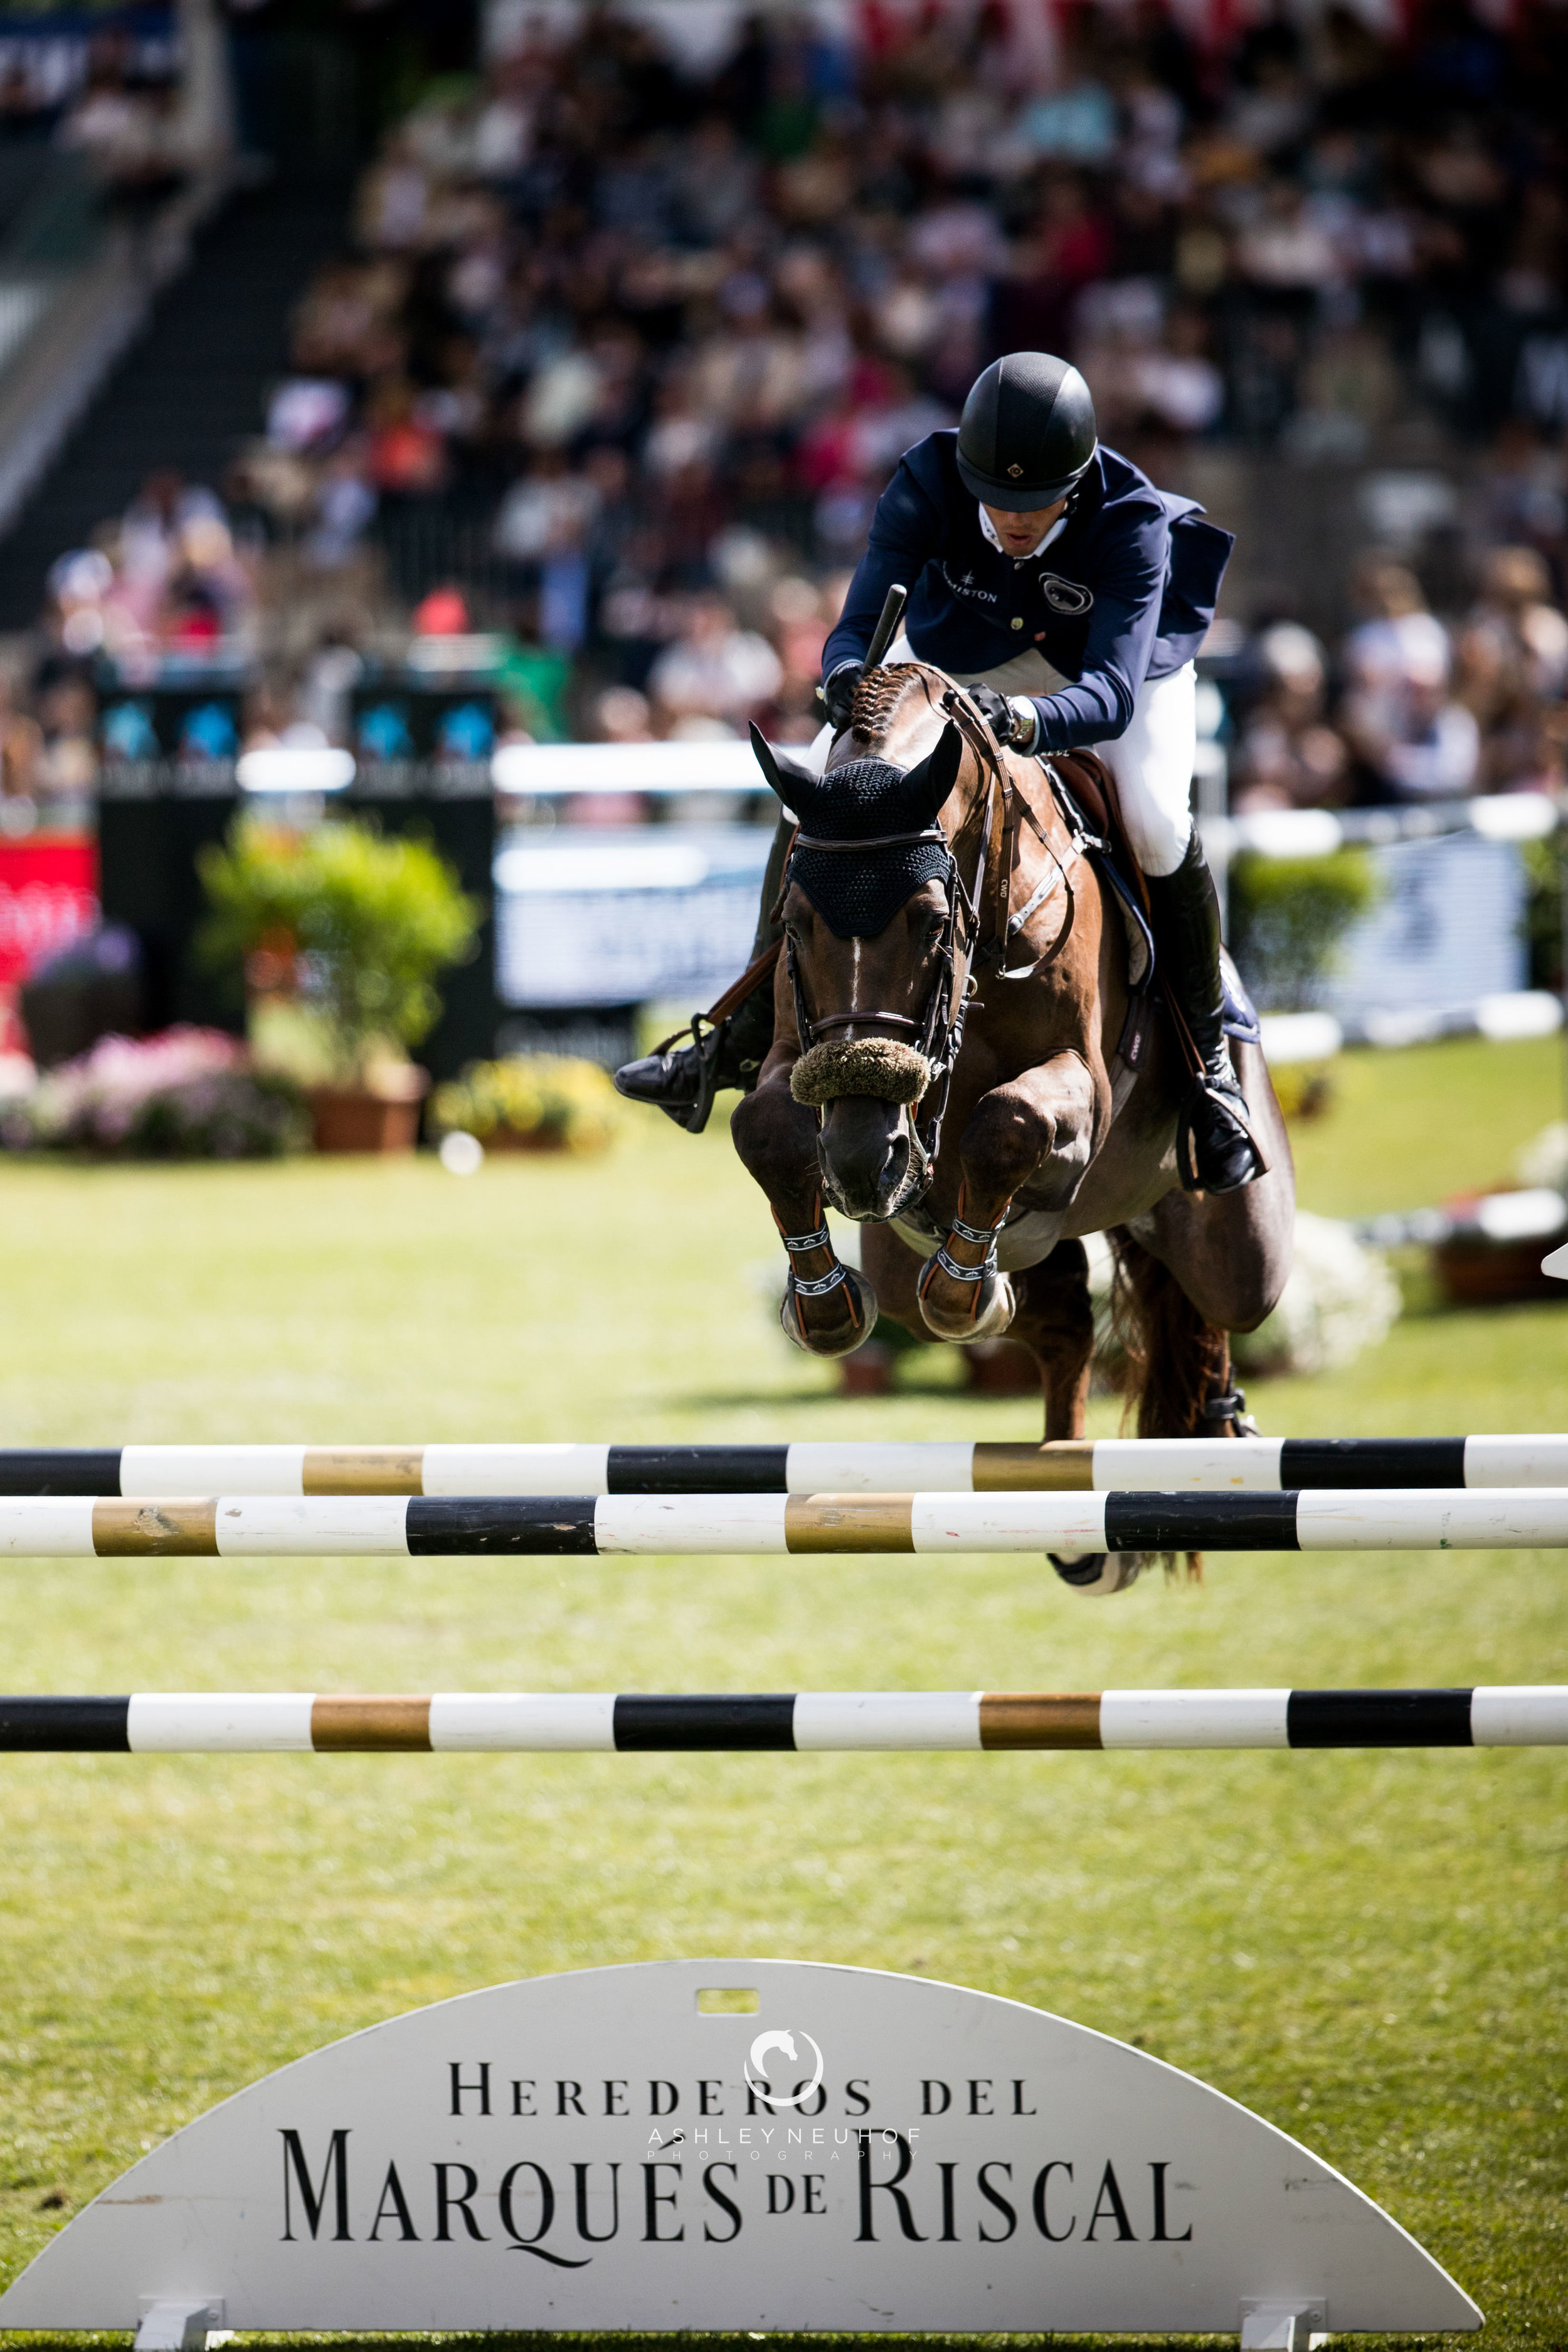 Harrie Smolders and Don VHP Z N.O.P. at Global Champions Tour of Madrid 2019. Photo by Ashley Neuhof Photography.